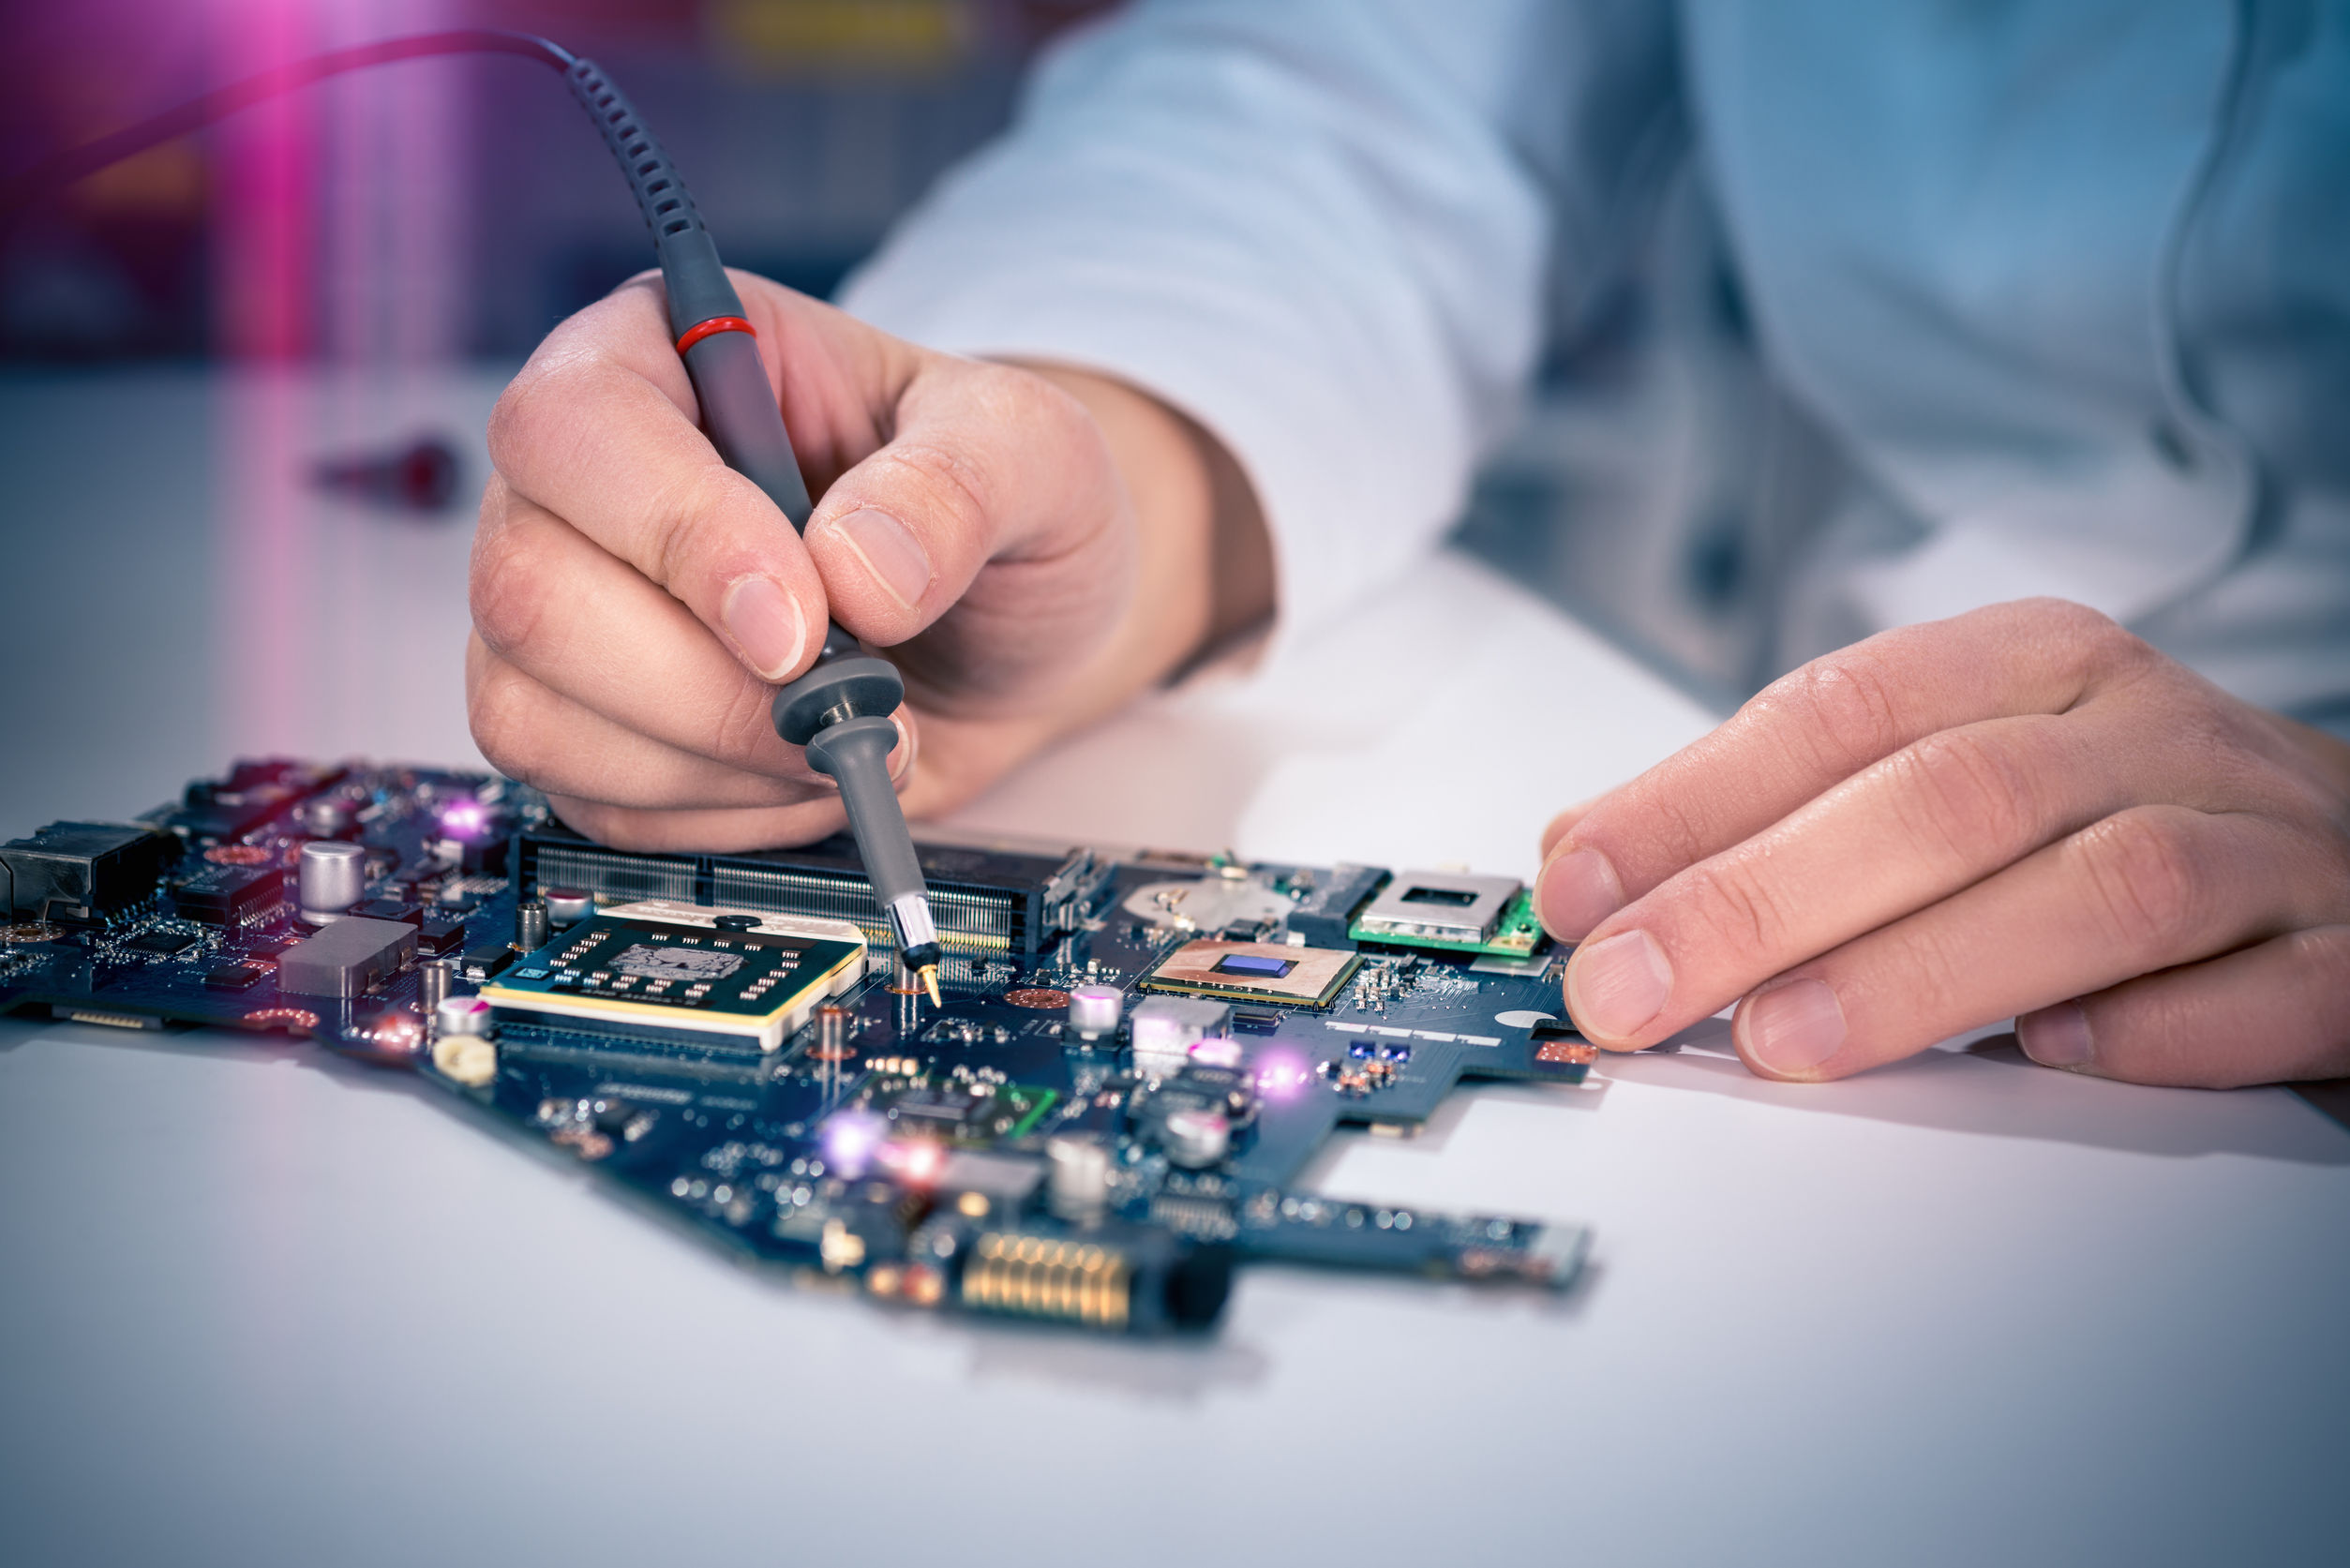 tech fixes motherboard in service center. shallow dof, focus on hands, image is toned with extra light effects